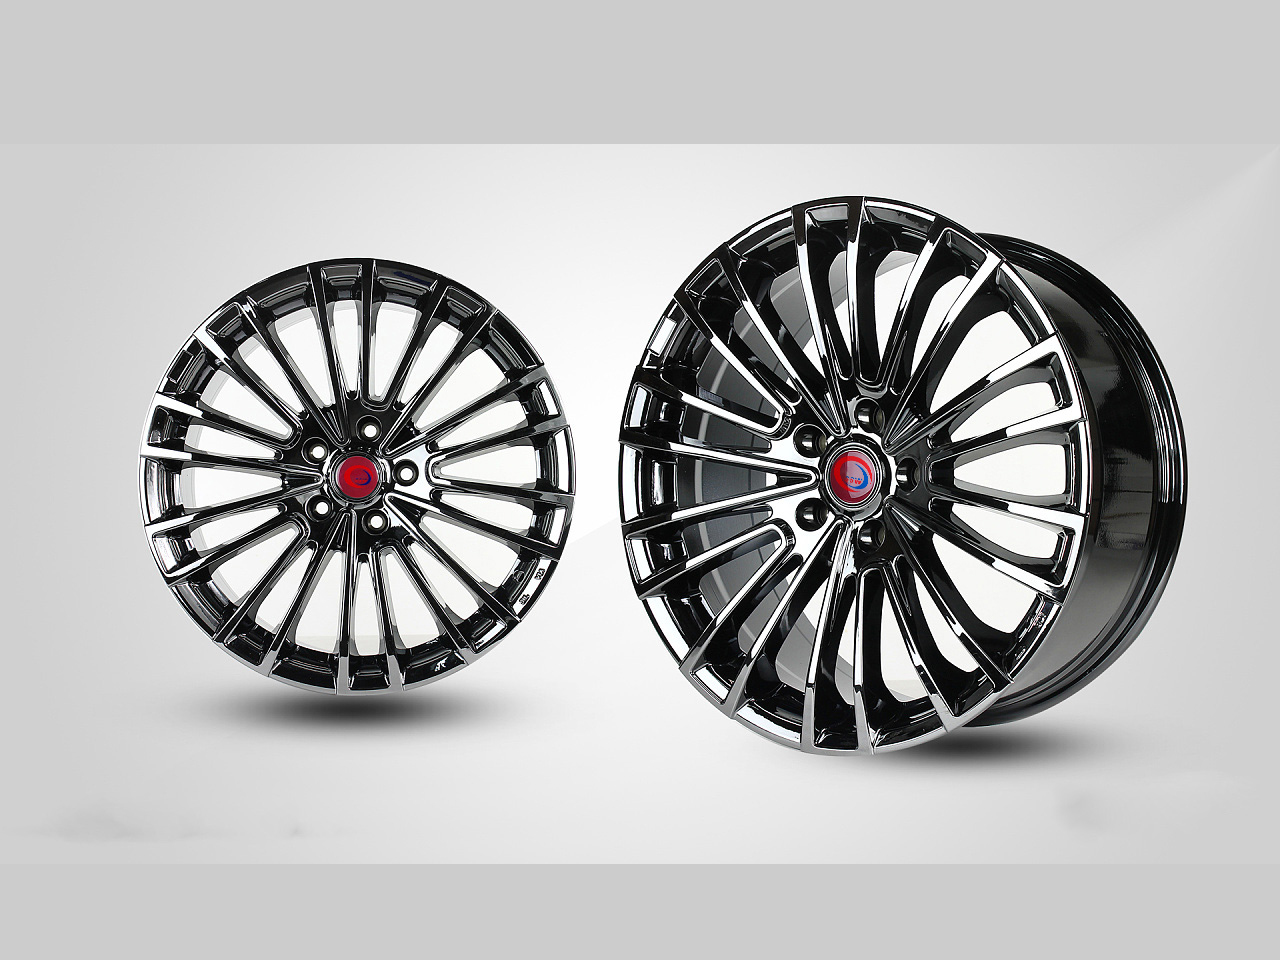 16-28 inches wheels aluminum alloy wheels a10